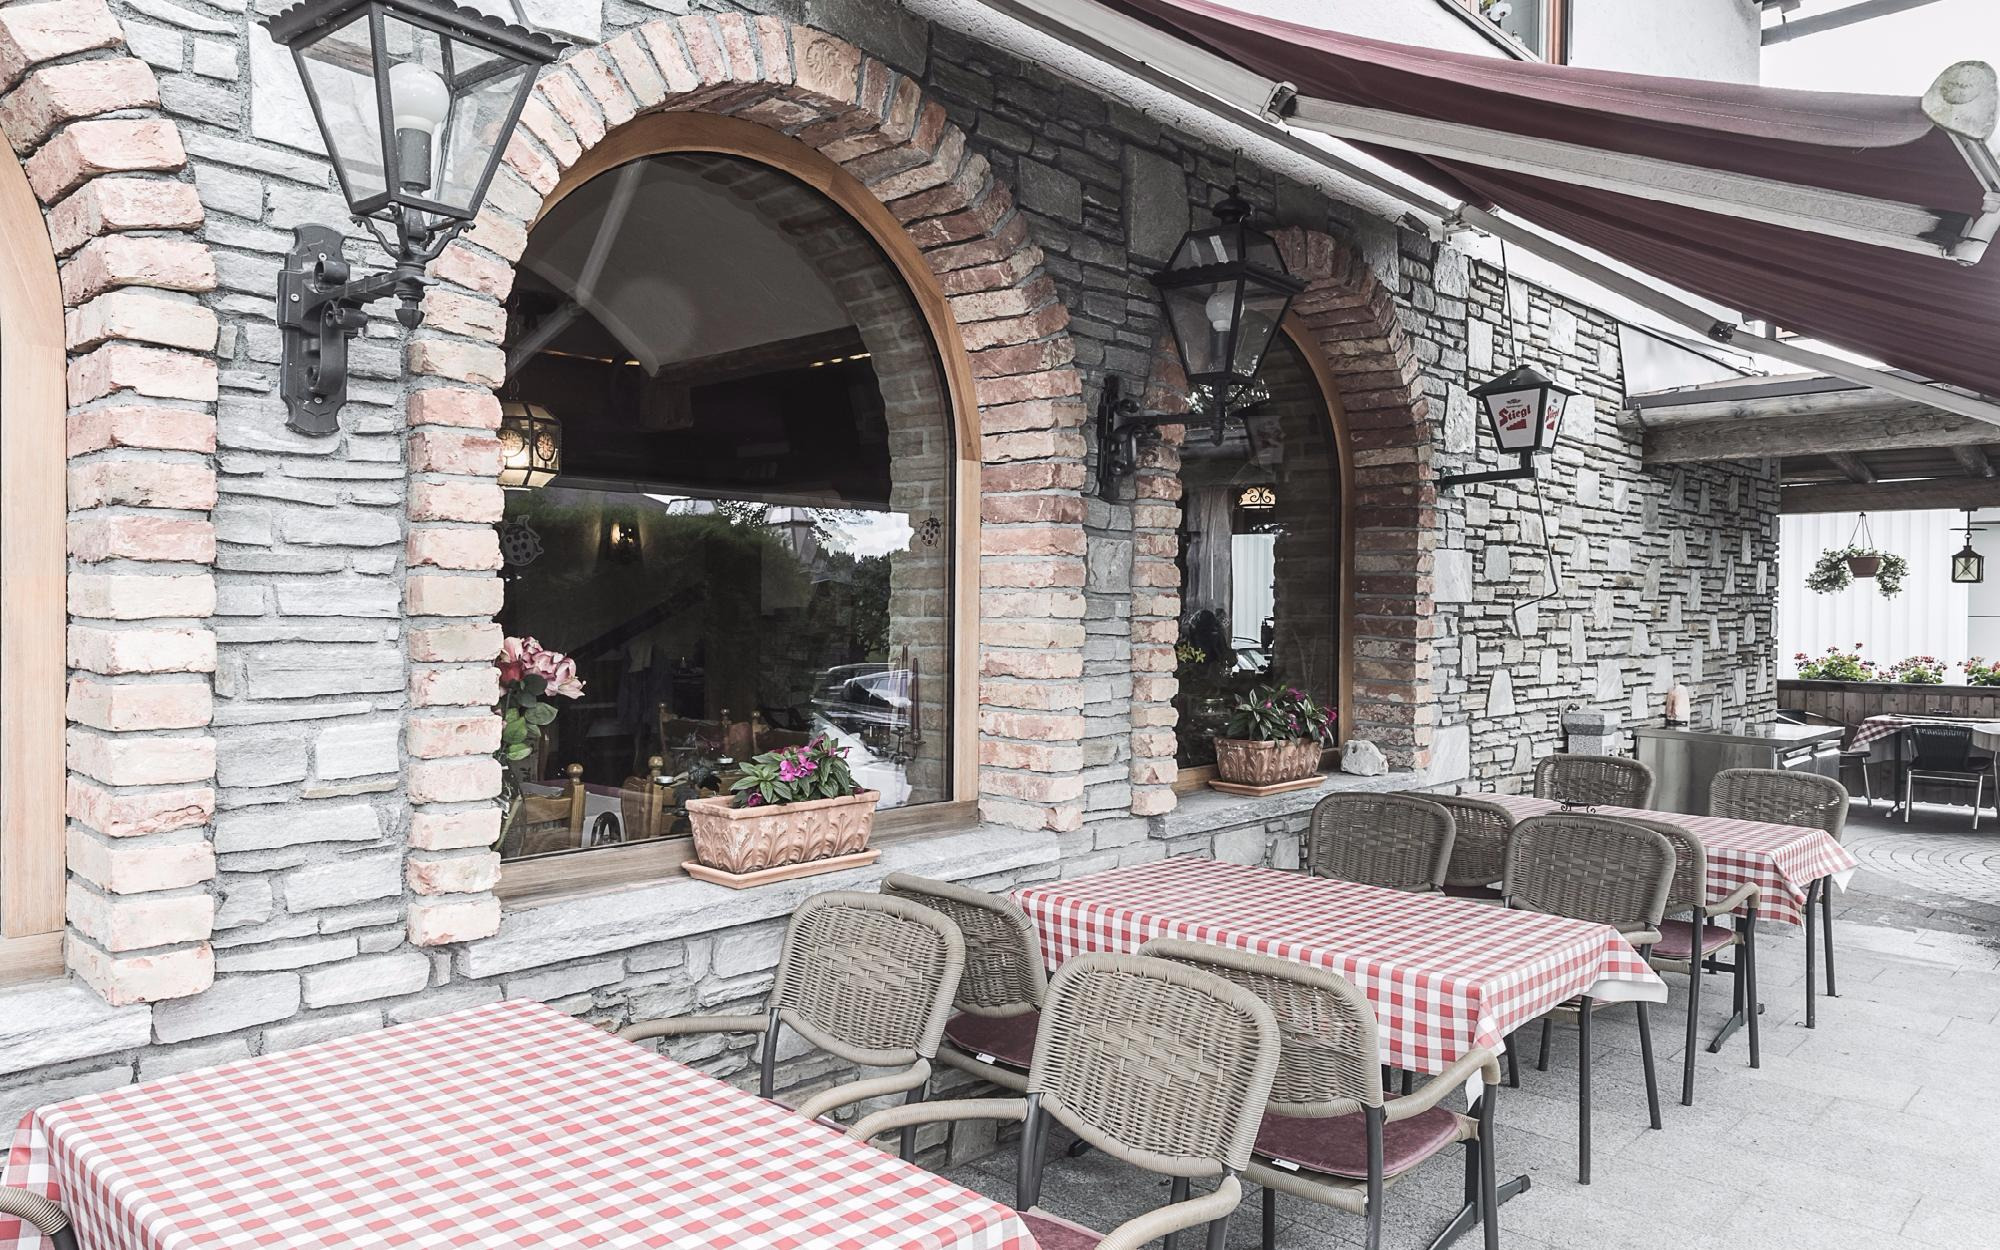 Restaurant in a frequented location of St. Johann in Tyrol for Sale - Tirol - Austria